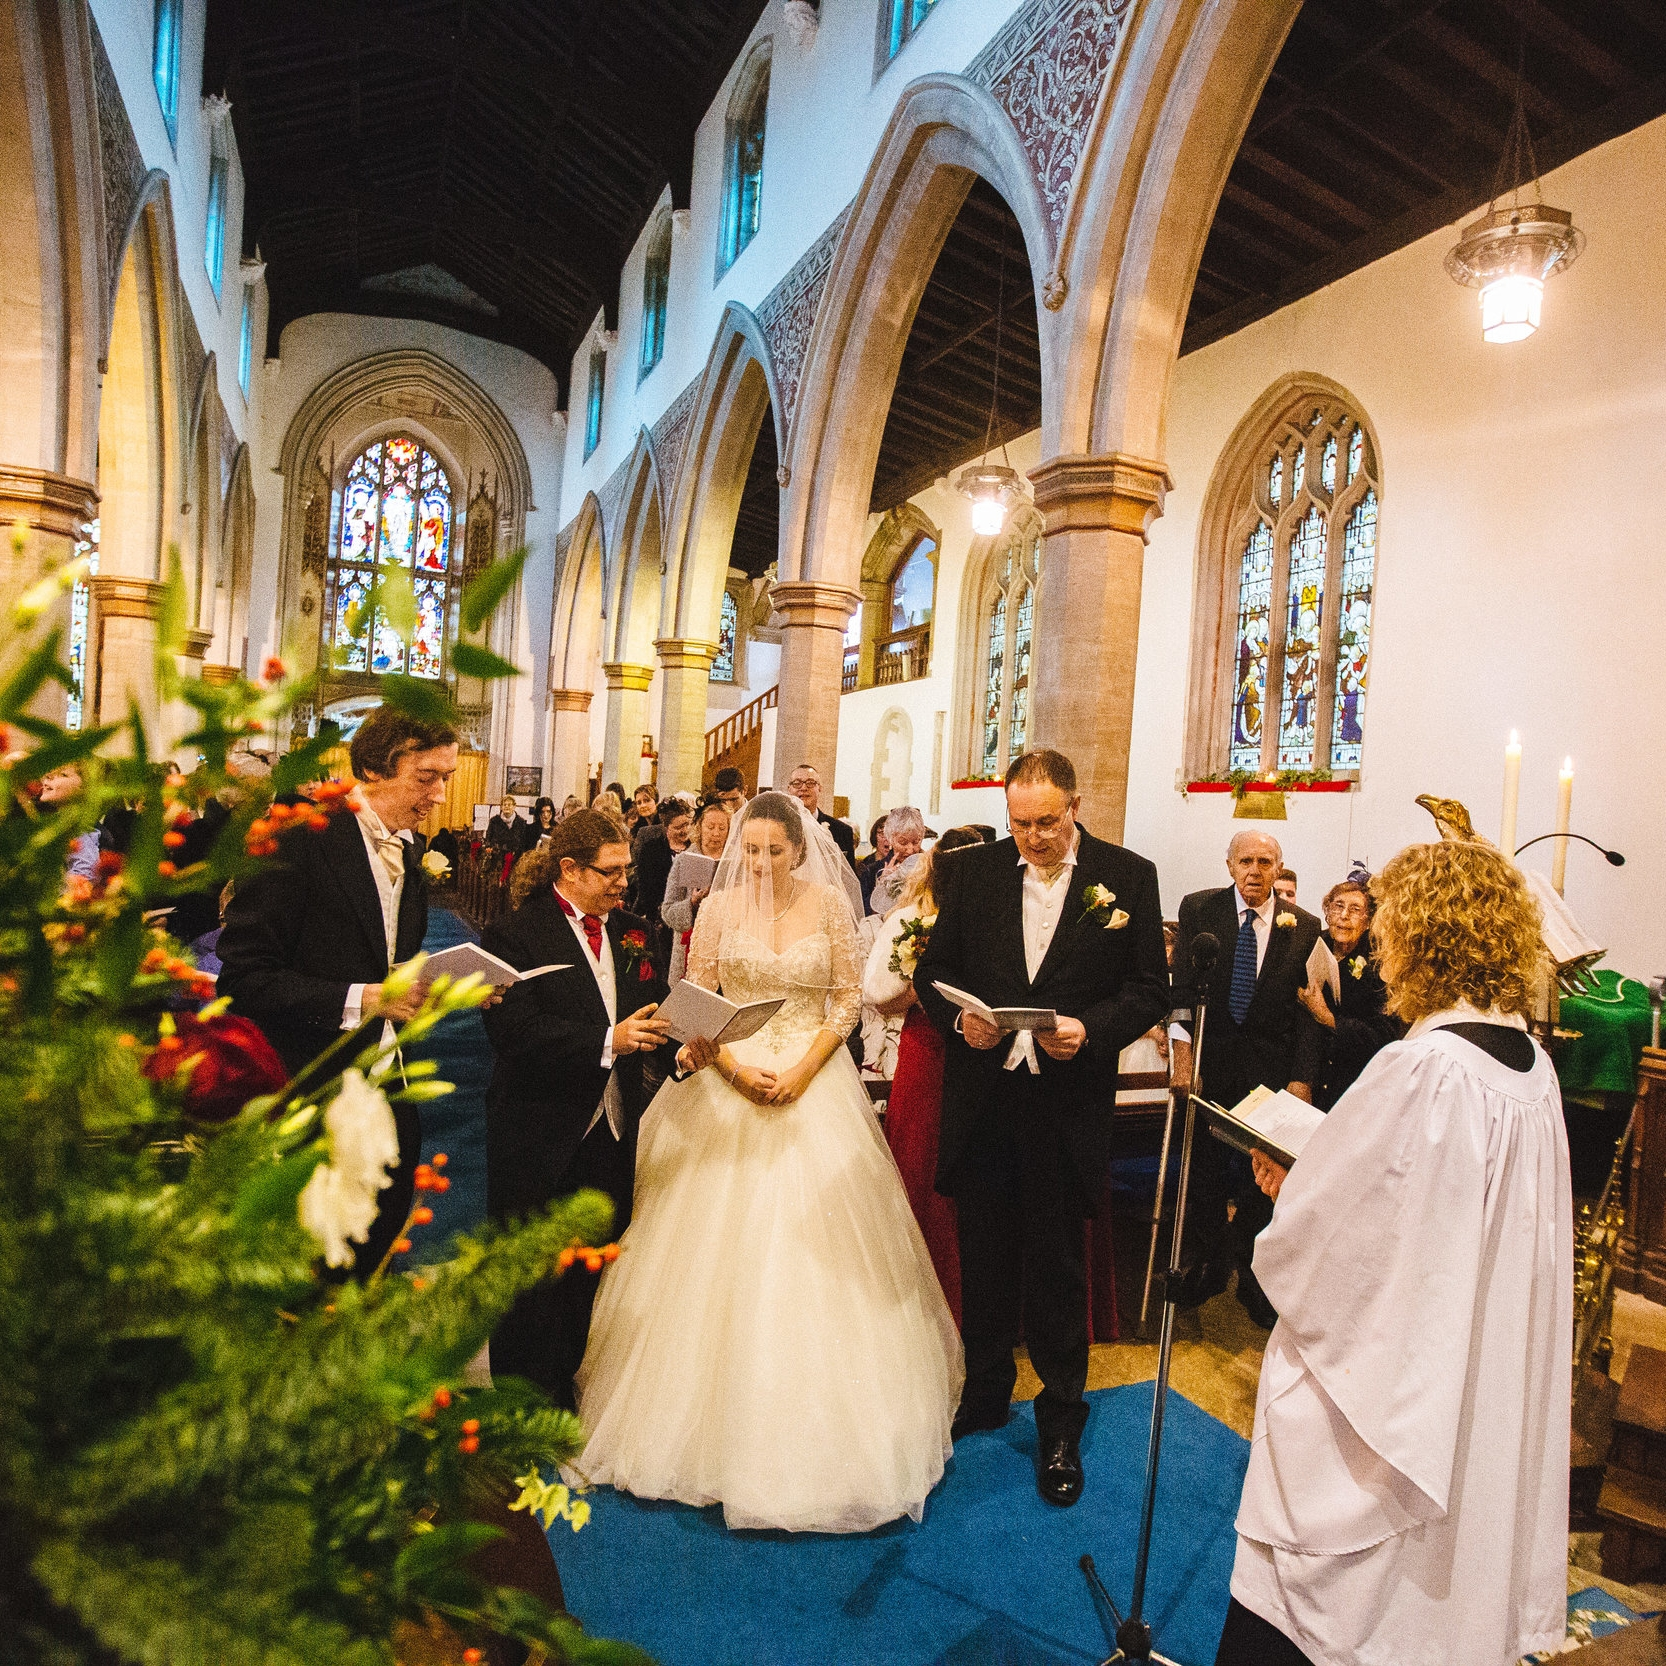 WEDDINGS - For more information on holding your special day at one of our churches